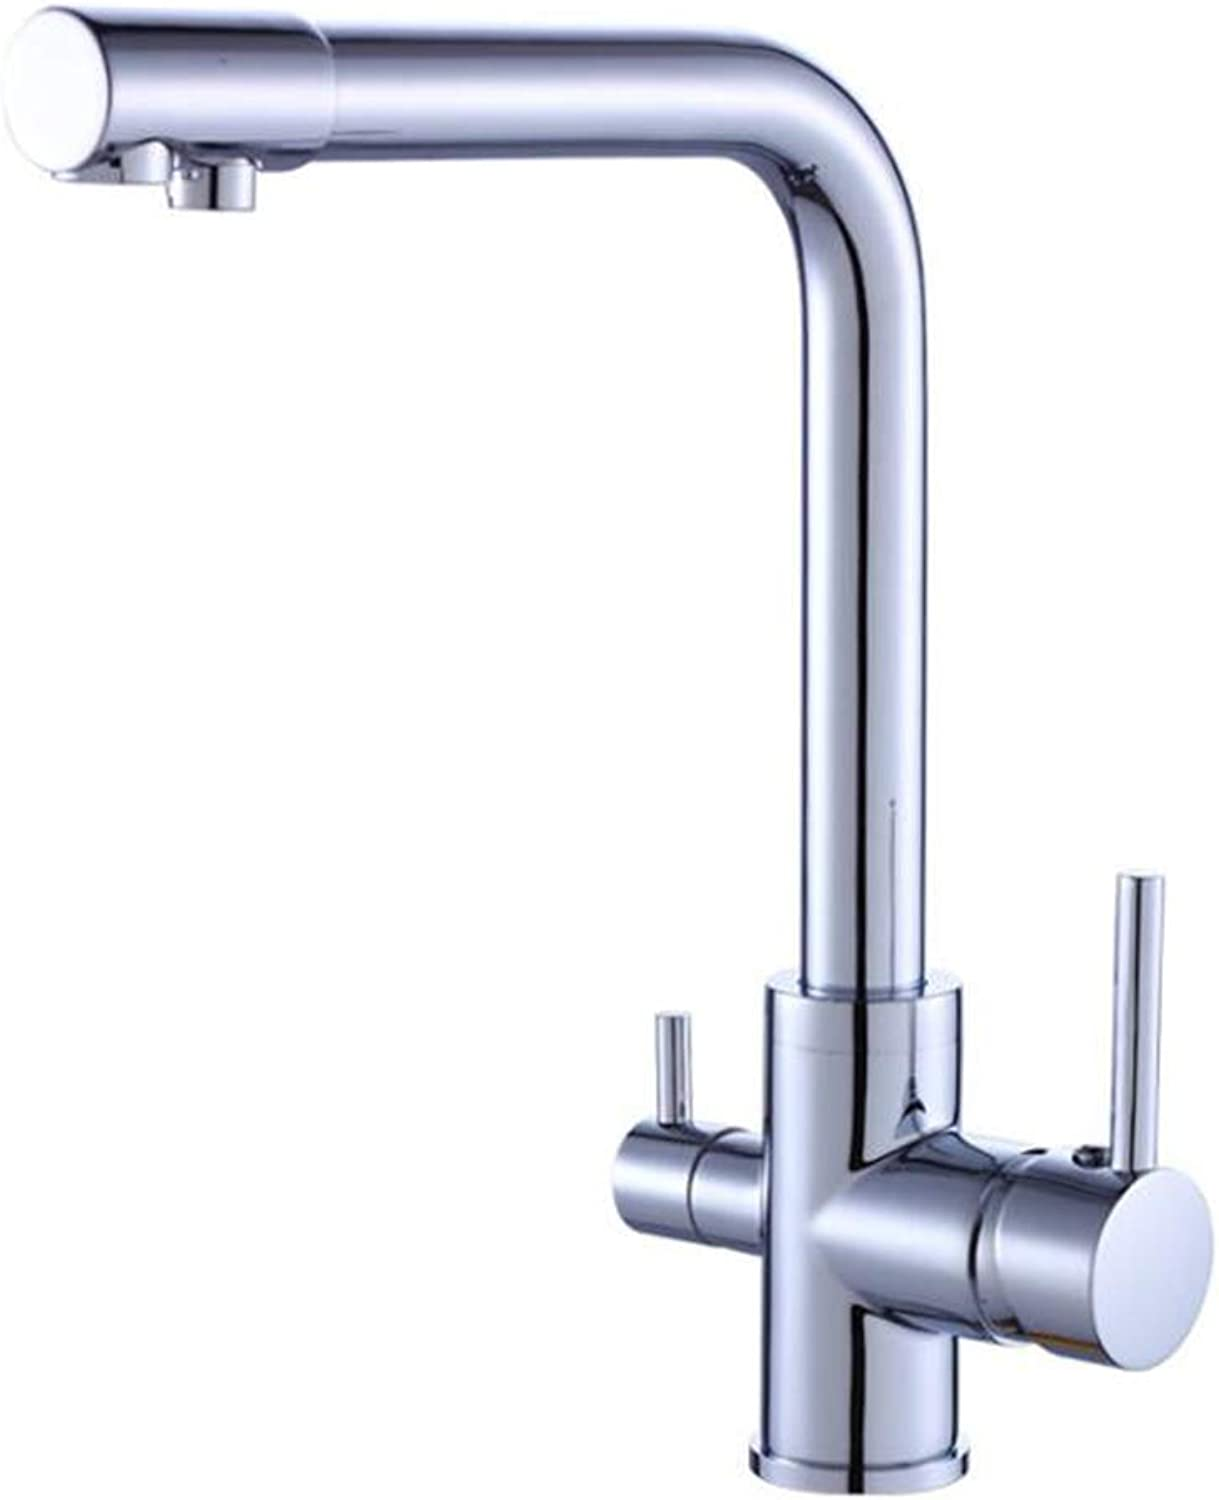 LCM Kitchen Faucet, Copper Water Purification Kitchen Faucet, Hot And Cold Water Single Kitchen Faucet Bathroom